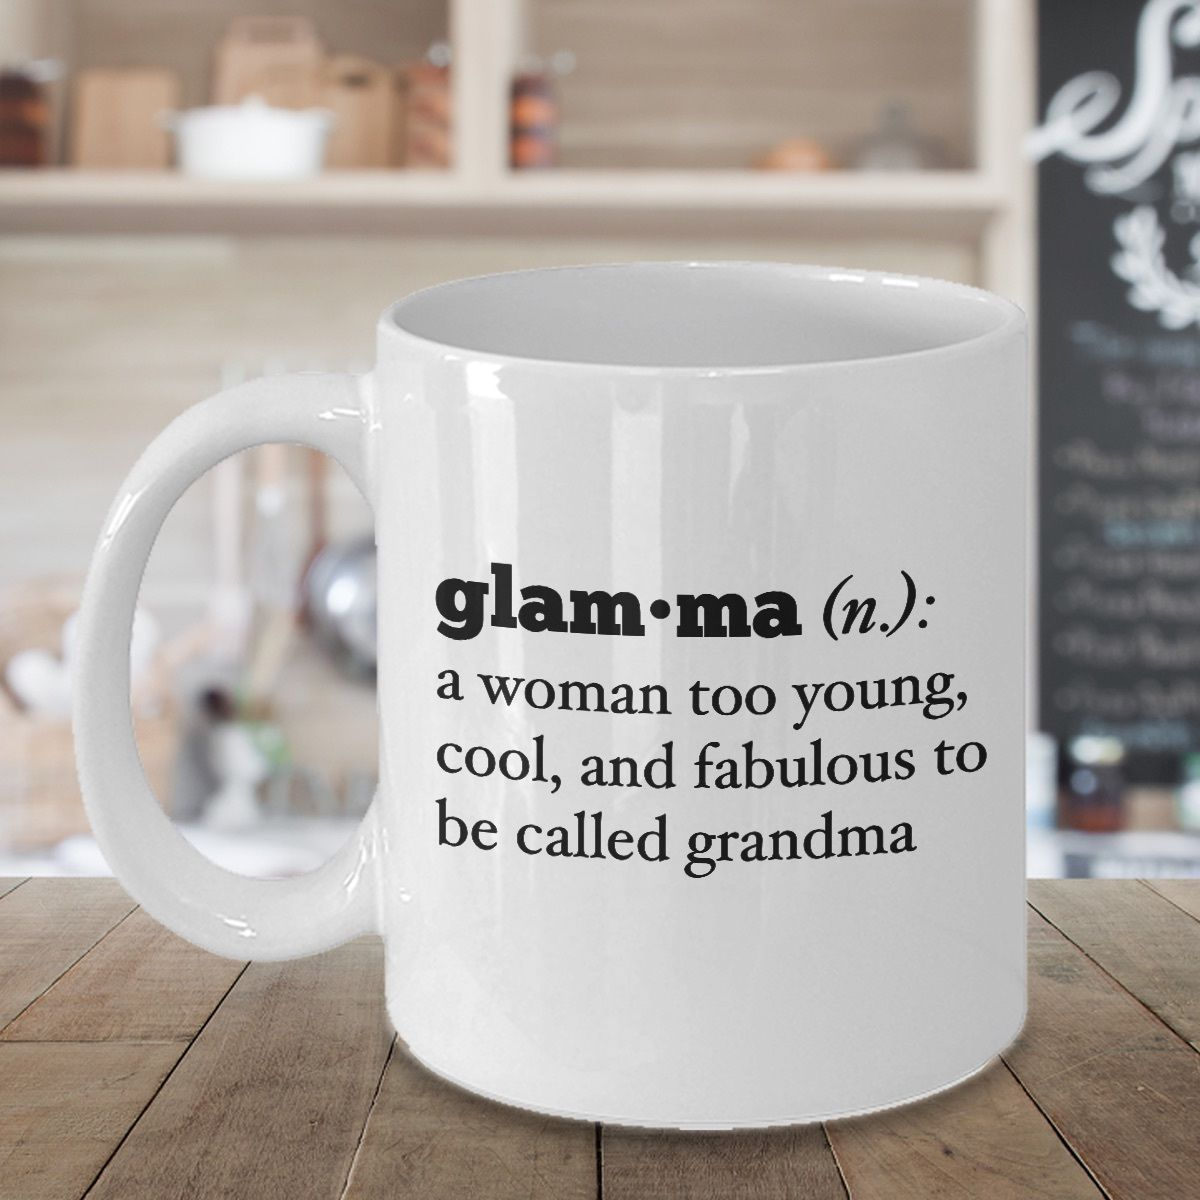 d7bd9c9f116 Glamma Definition Mug - Grandmother Grandma and 50 similar items. 57